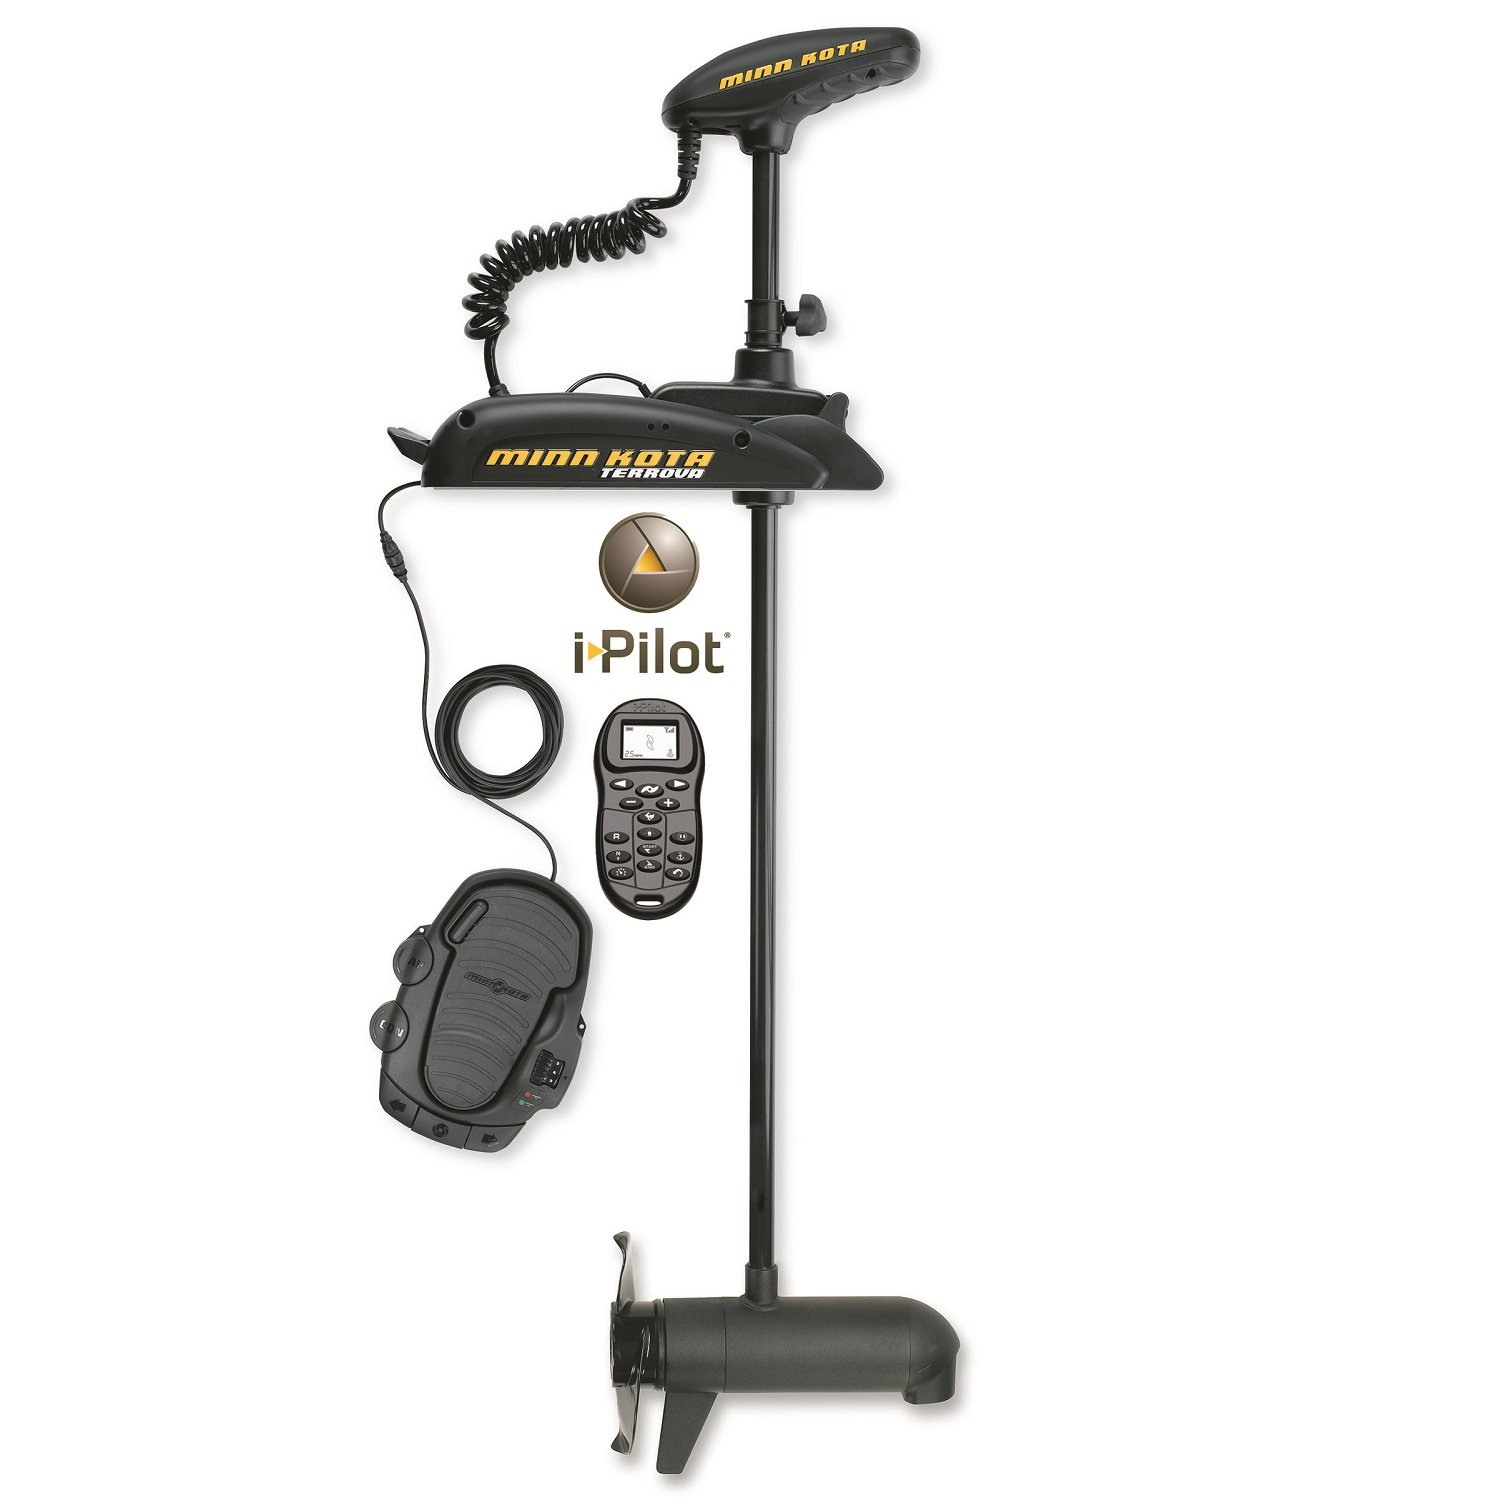 Amazon minn kota terrova 80 bow mount trolling motor with amazon minn kota terrova 80 bow mount trolling motor with universal sonar 2 and i pilot includes foot pedal 80 lb thrust 45 shaft electric pooptronica